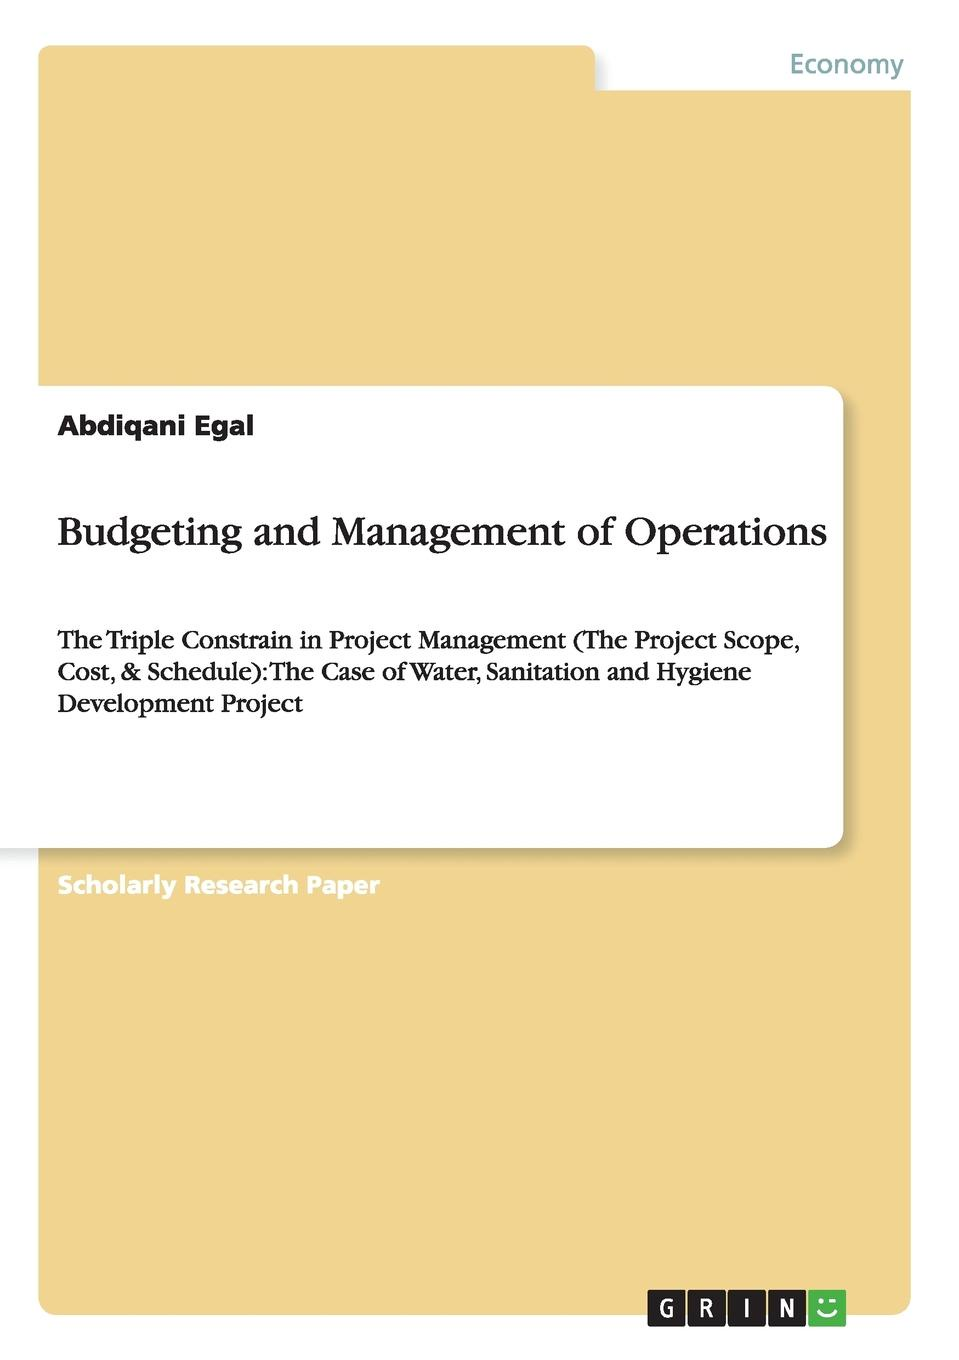 Abdiqani Egal Budgeting and Management of Operations kevin callahan r project management accounting budgeting tracking and reporting costs and profitability